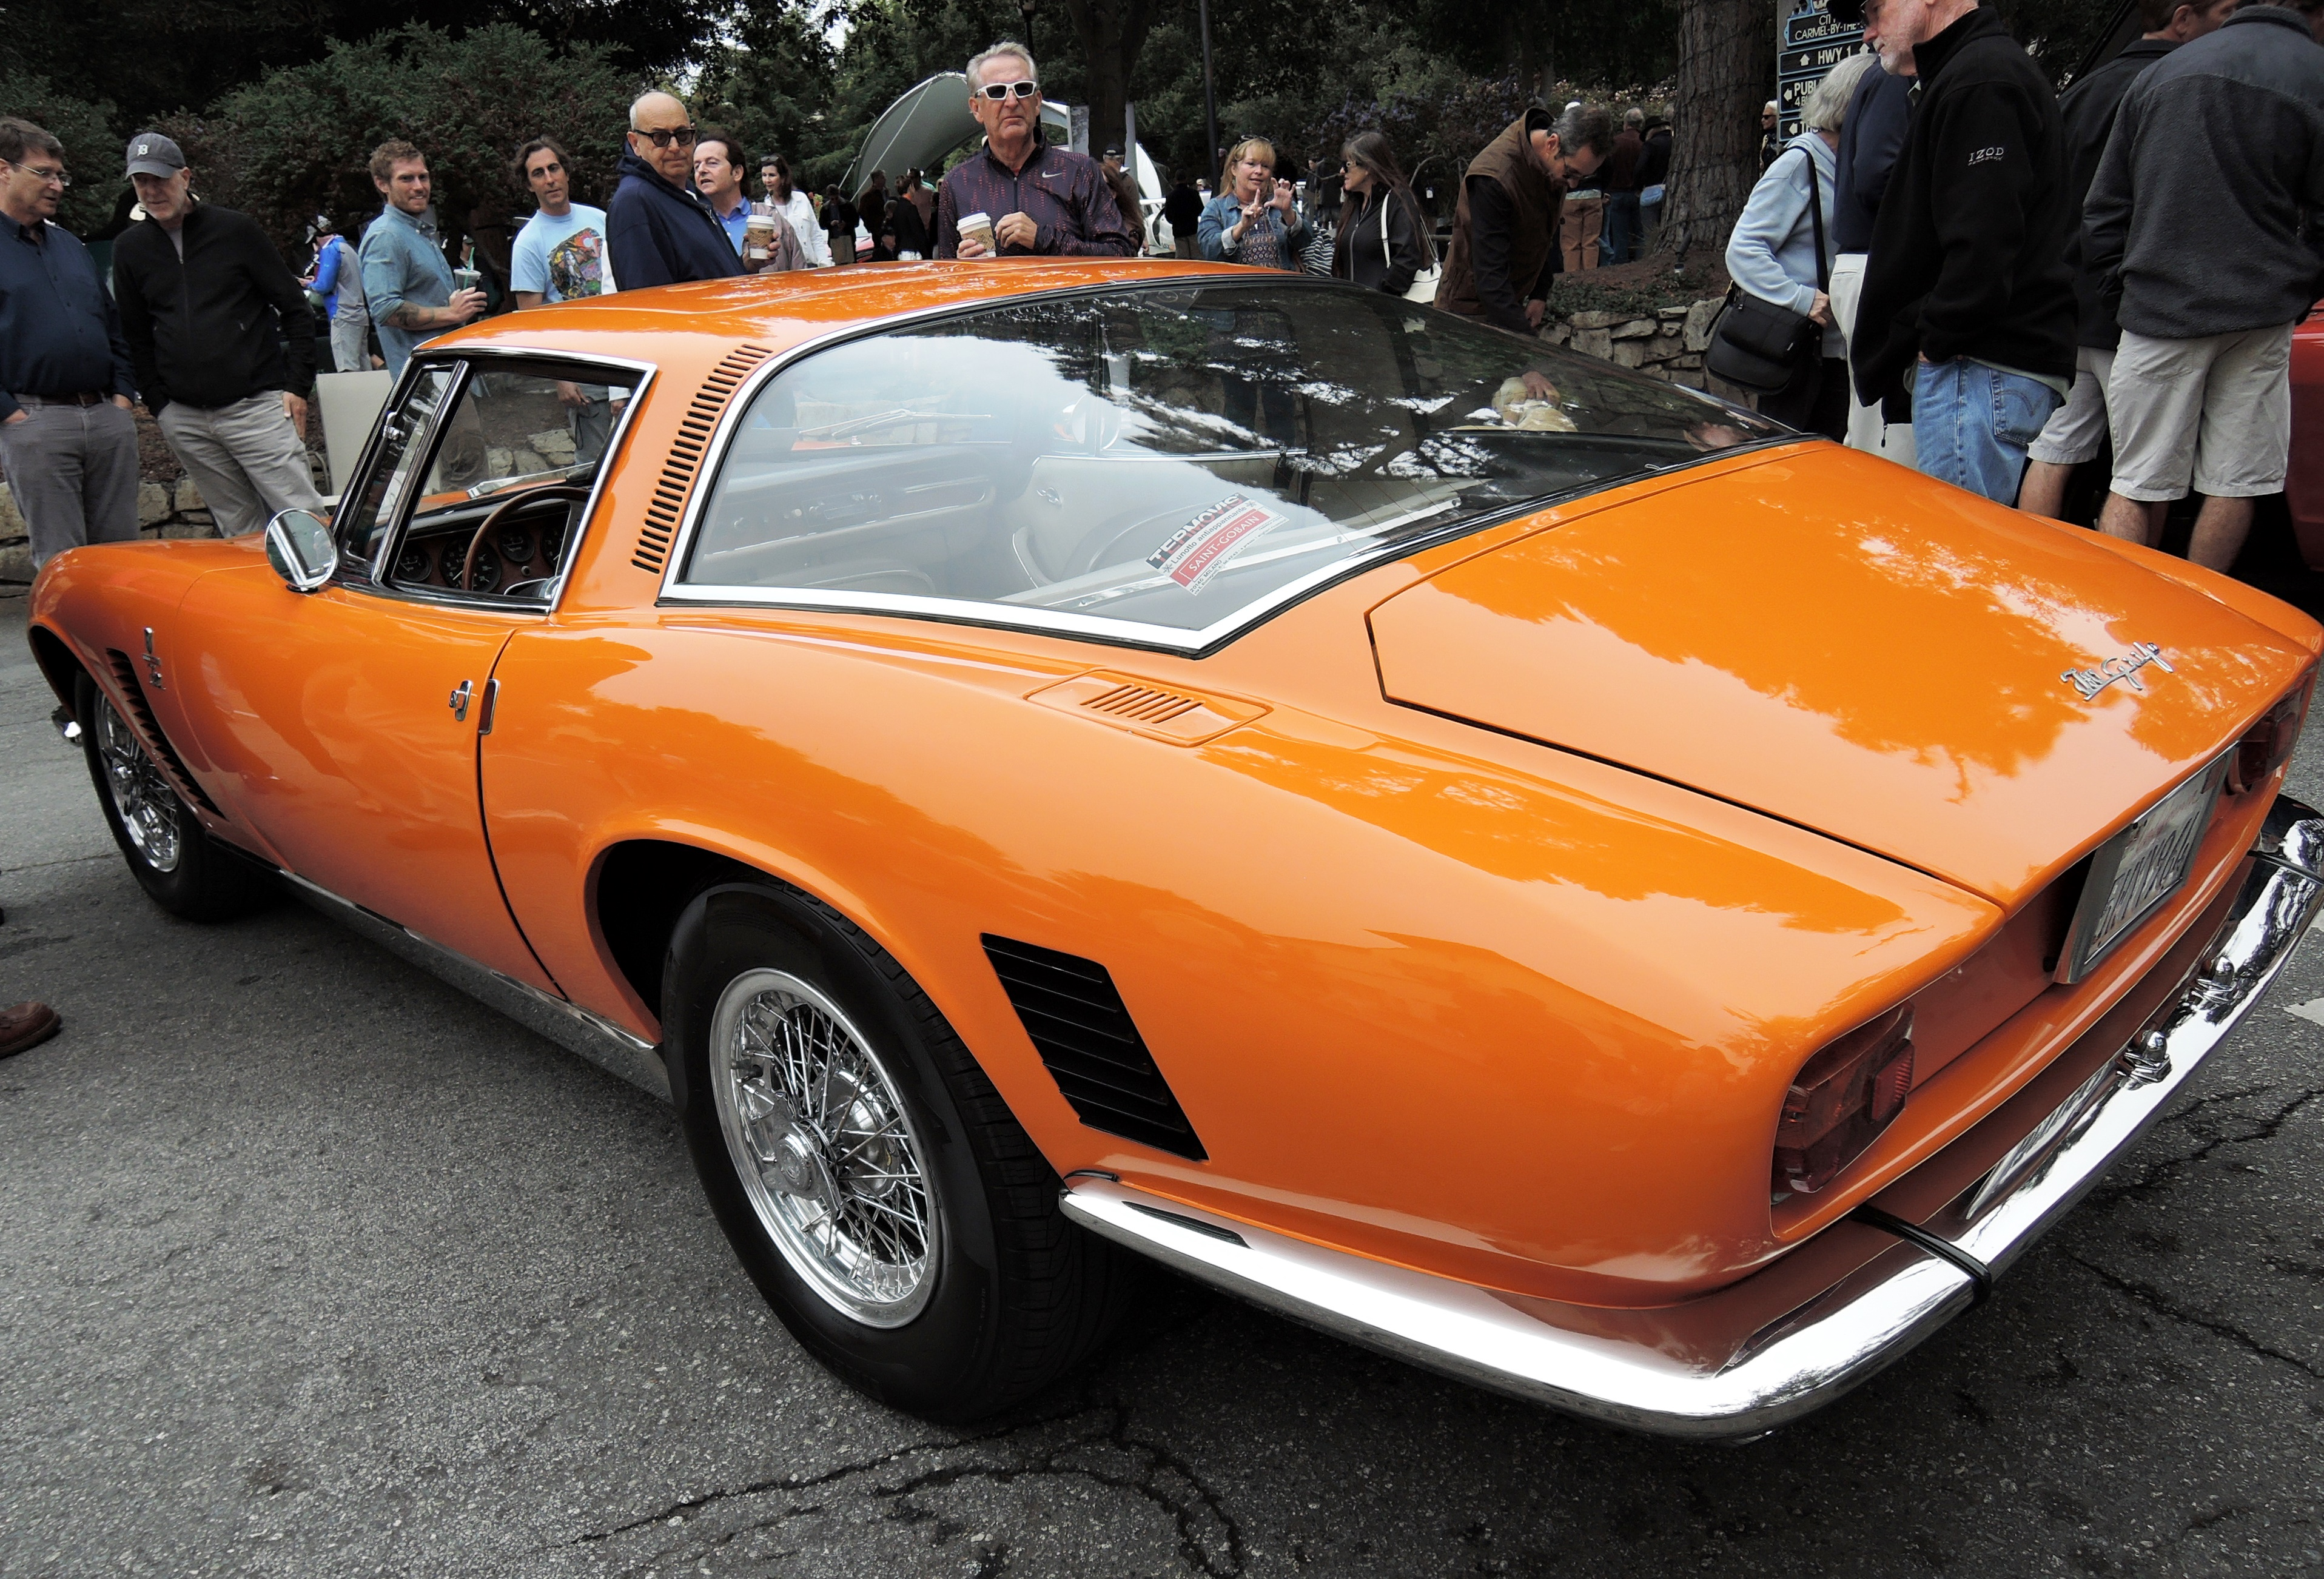 orange 1967 Iso Grifo GL - Concours on the Ave Carmel